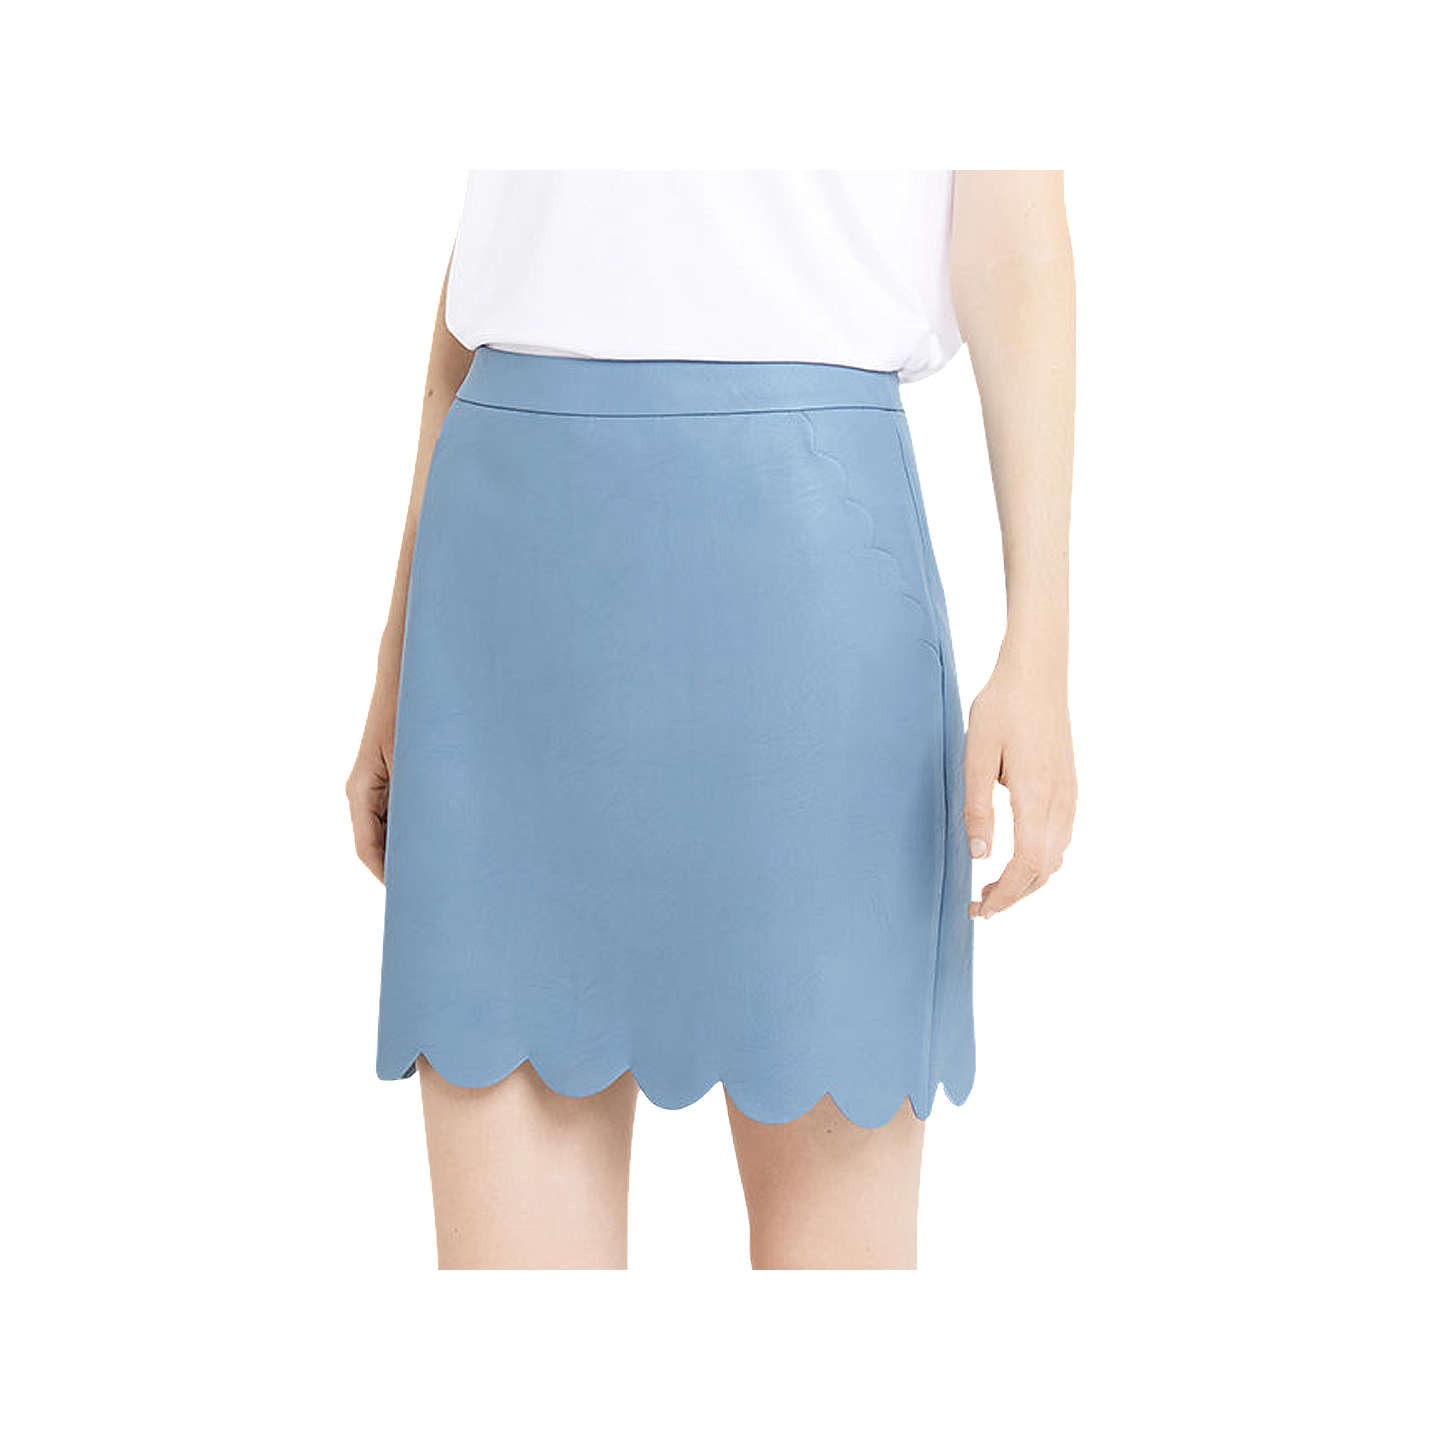 BuyOasis Faux Leather Scallop Skirt, Light Blue, 8 Online at johnlewis.com